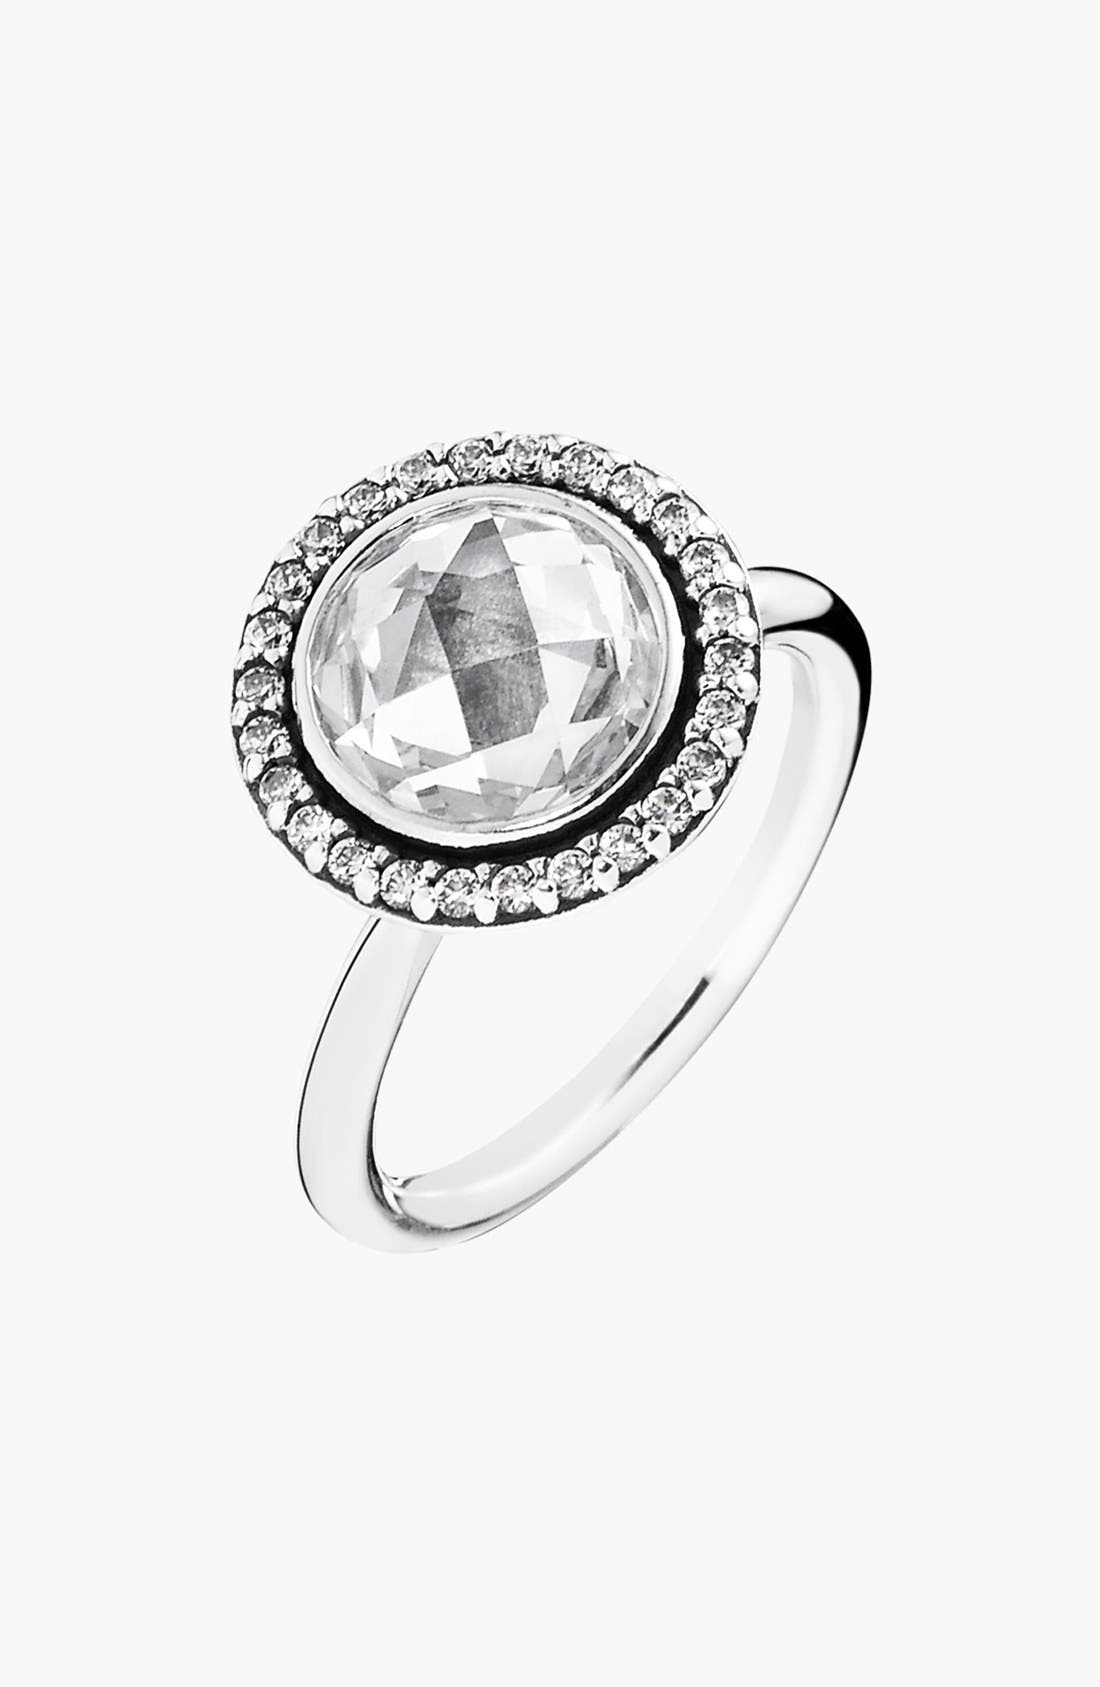 Main Image - PANDORA 'Brilliant Legacy' Cocktail Ring